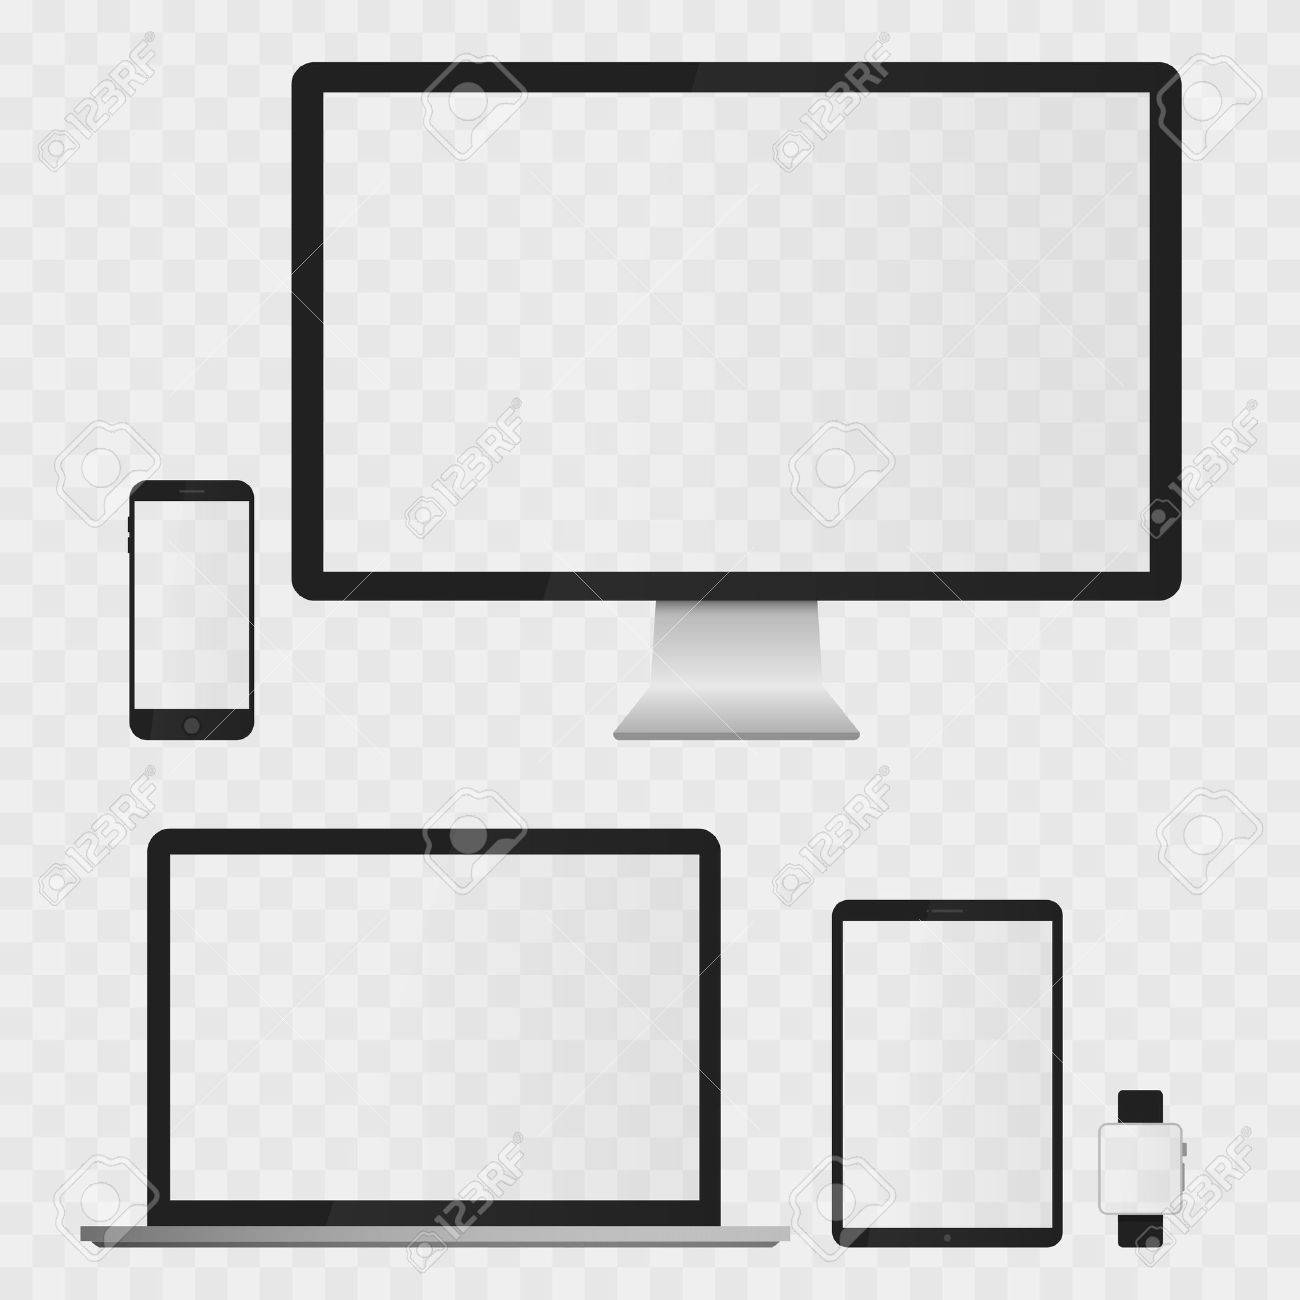 Electronic Devices Screens isolated on white background. Desktop computer, laptop, tablet and mobile phones with transparency. - 57048714